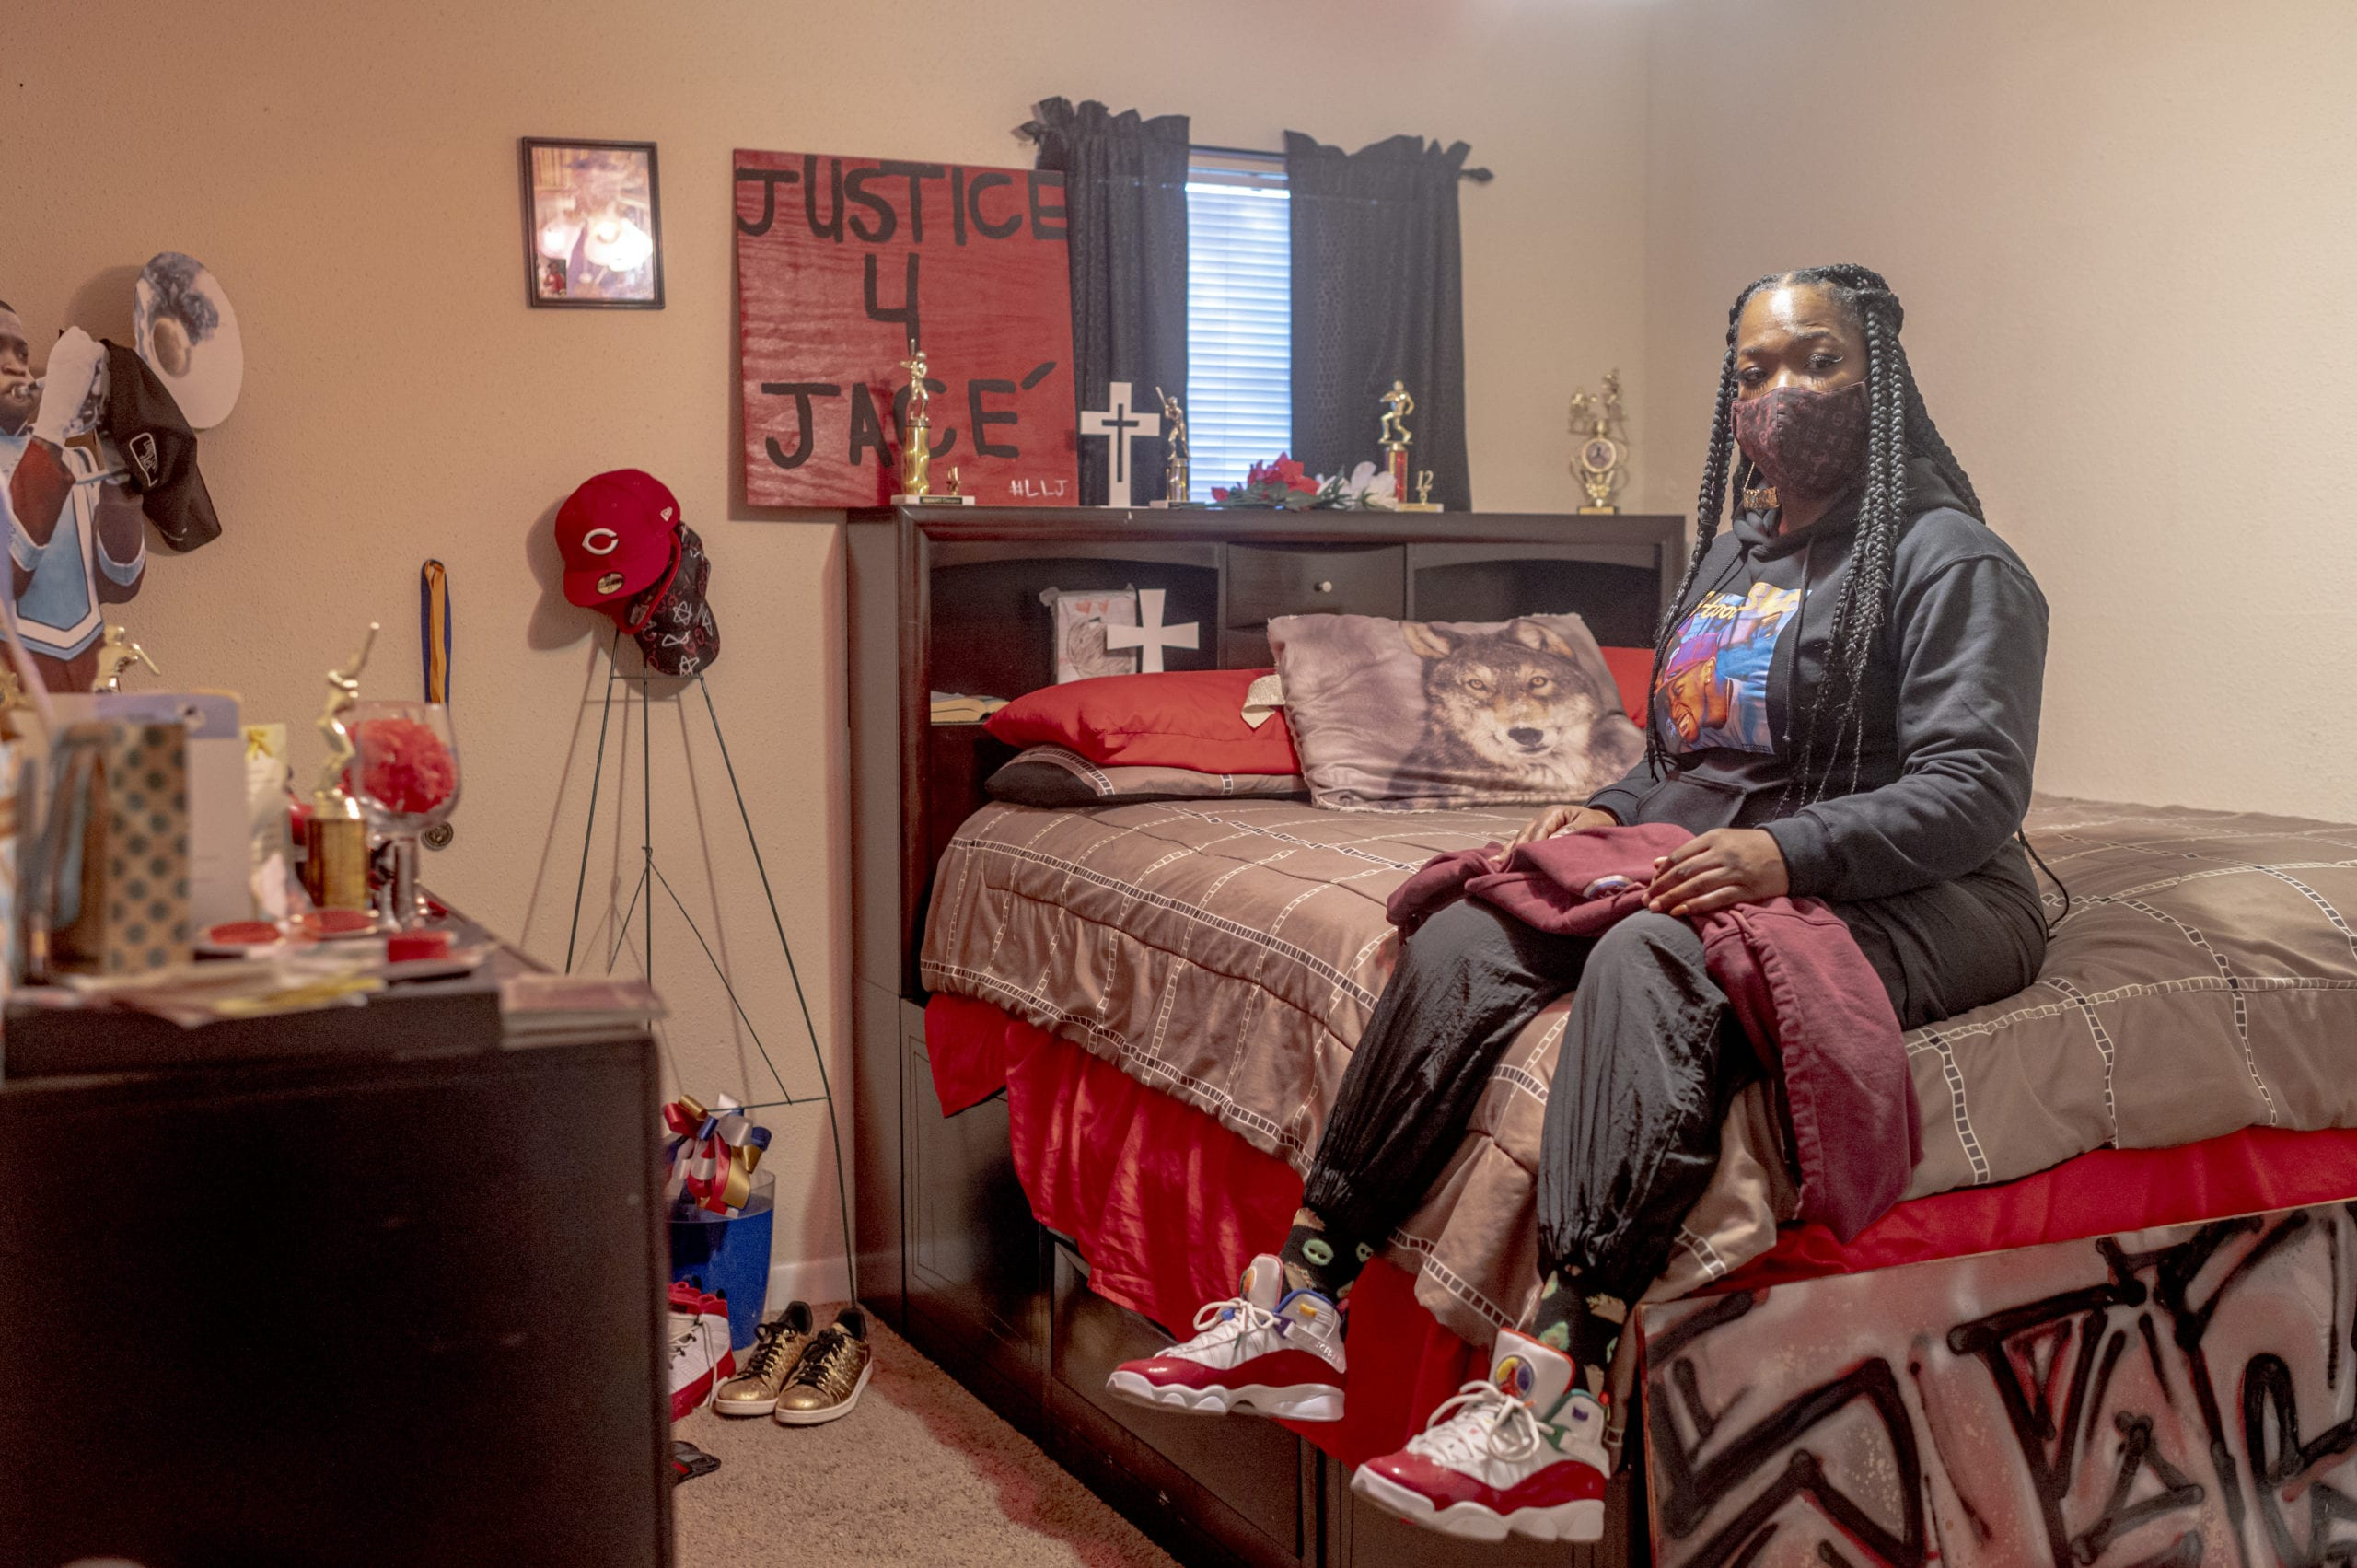 For Shanta Scott, eviction would mean packing up her late son's bedroom, her last physical tether to him.